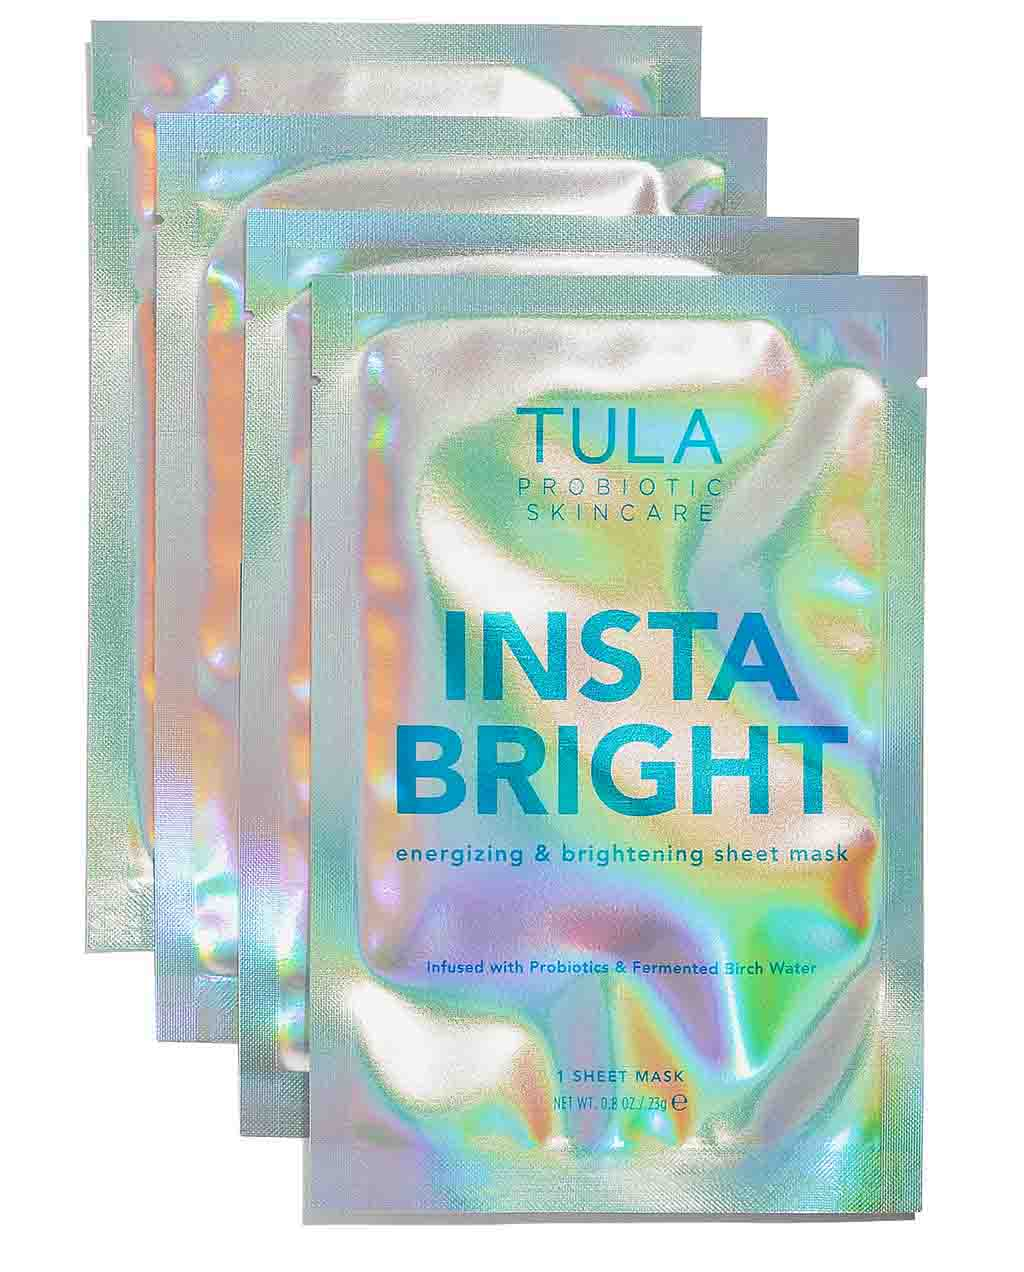 Insta Bright Energizing & Brightening Sheet Mask